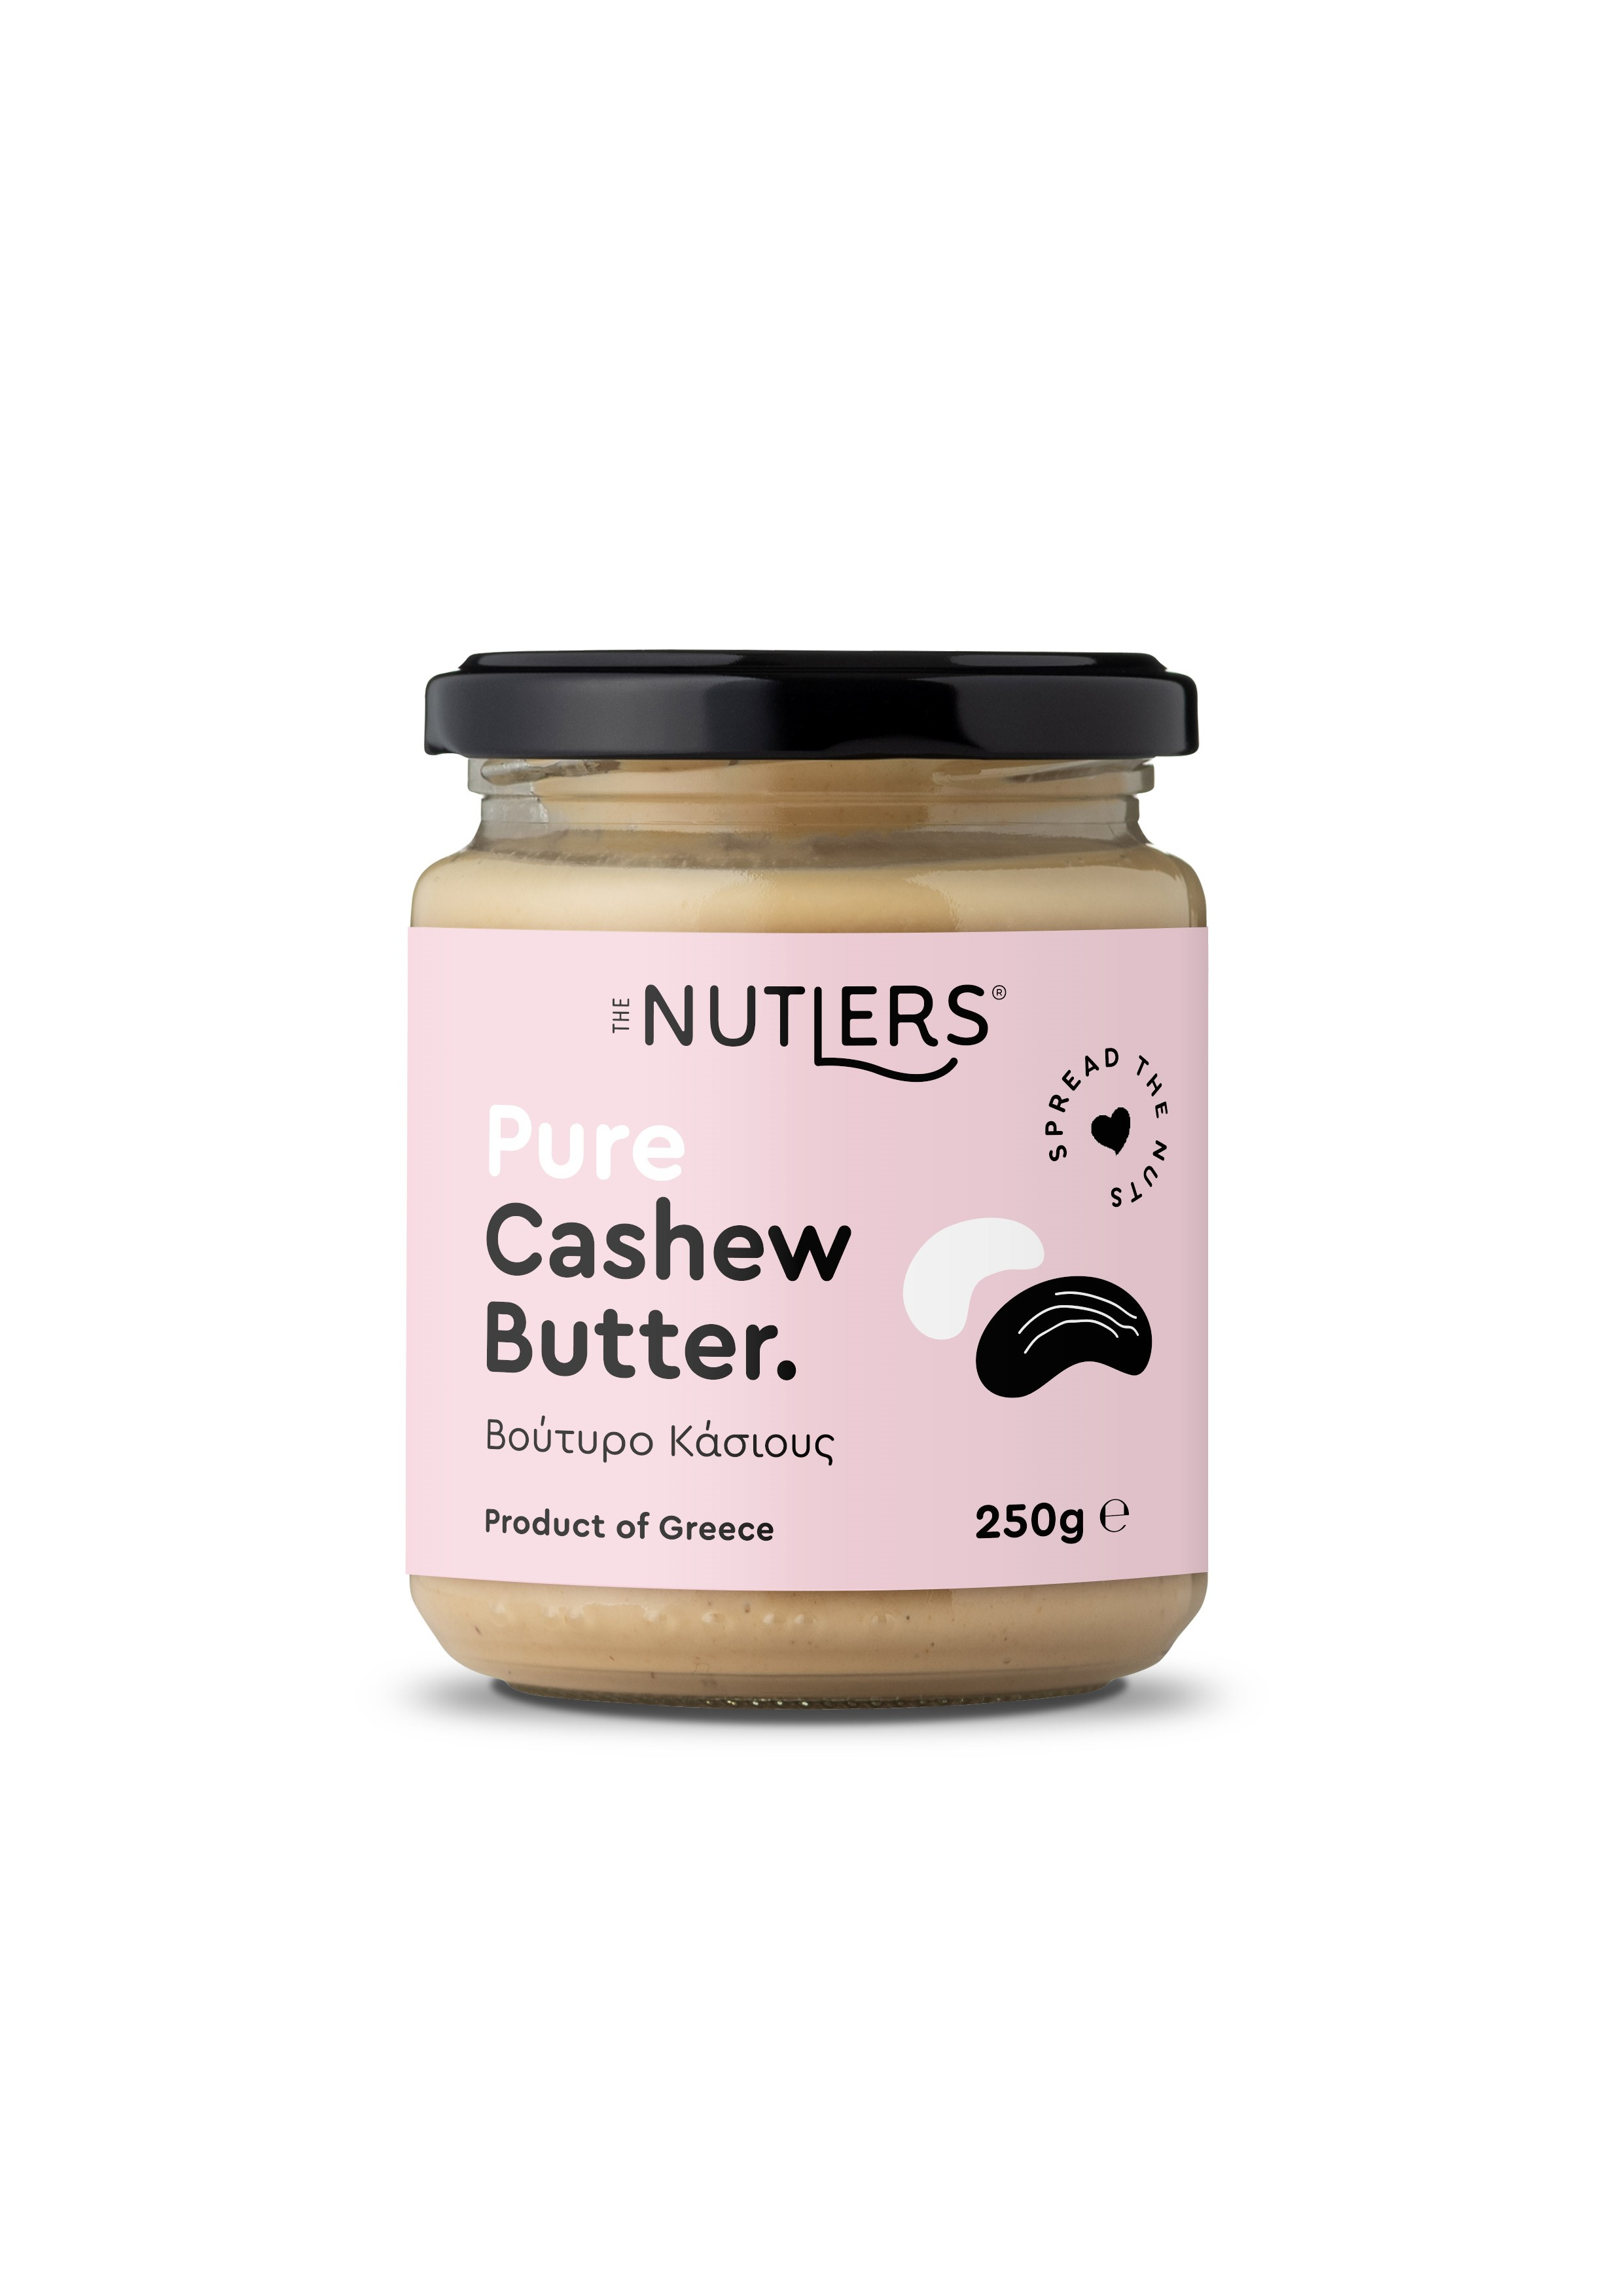 The Nutlers CASHEW BUTTER